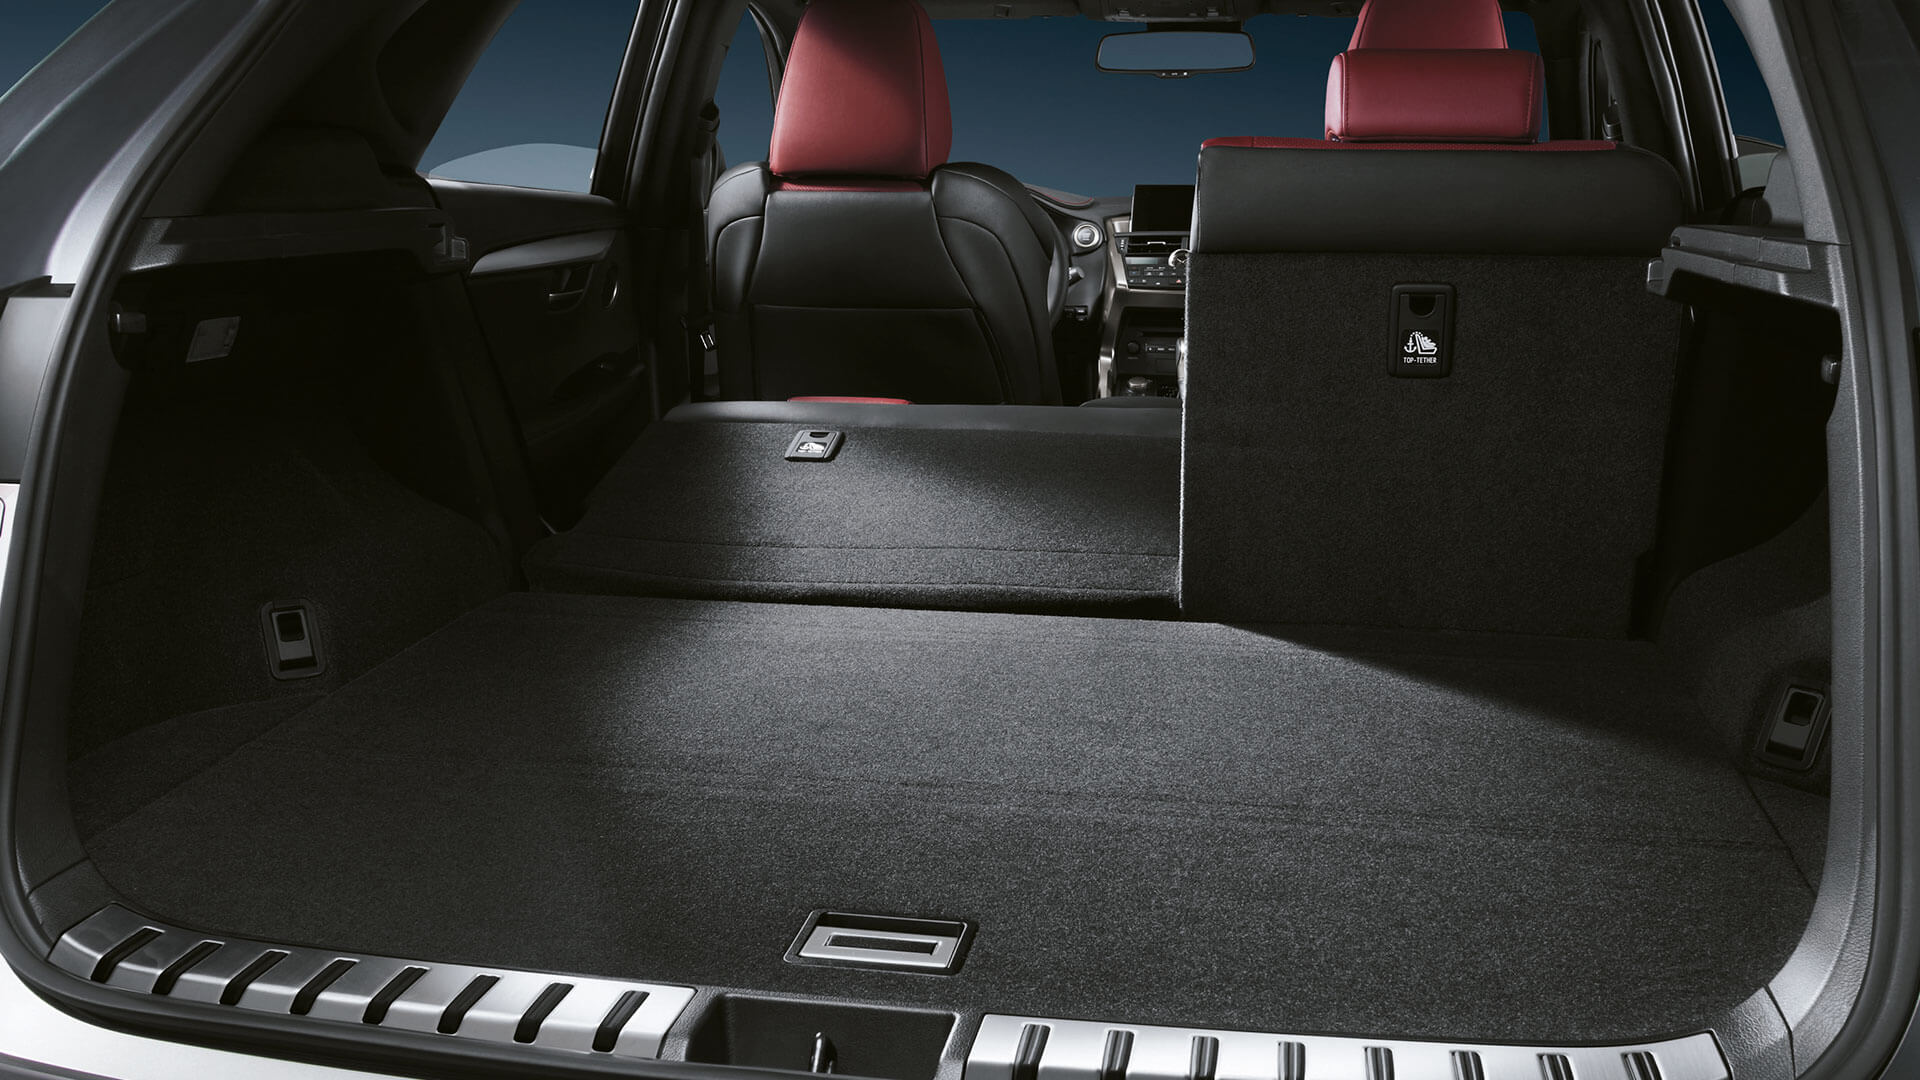 2017 lexus nx 300h features flexible luggage